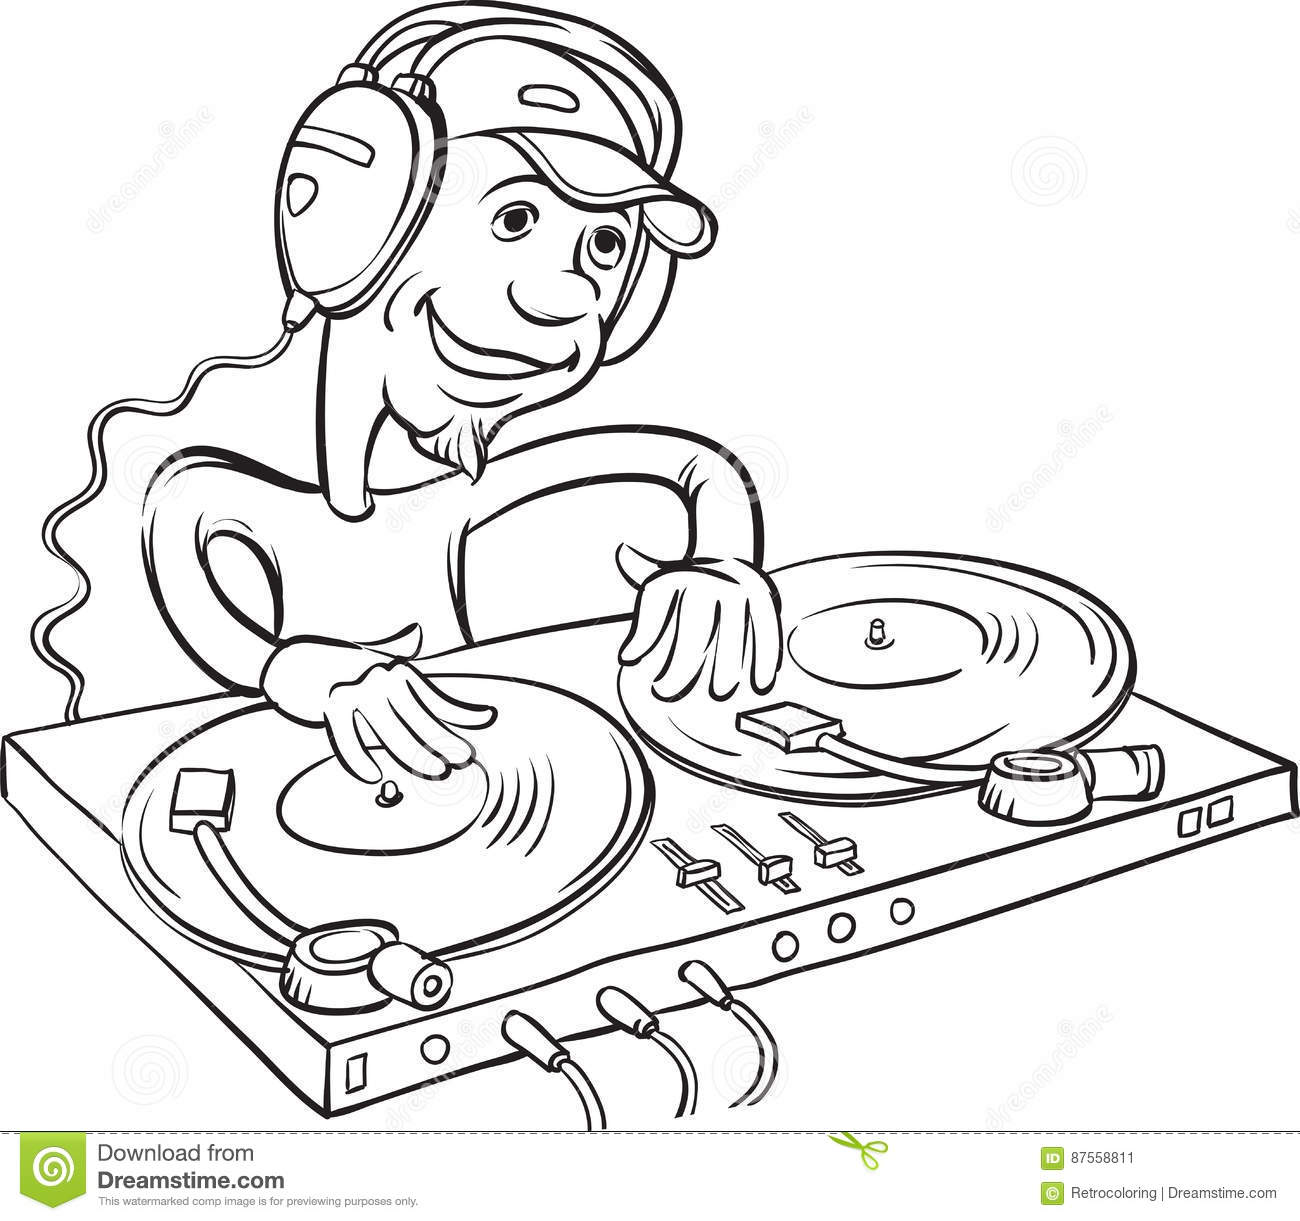 Turntable Coloring Pages Coloring Pages